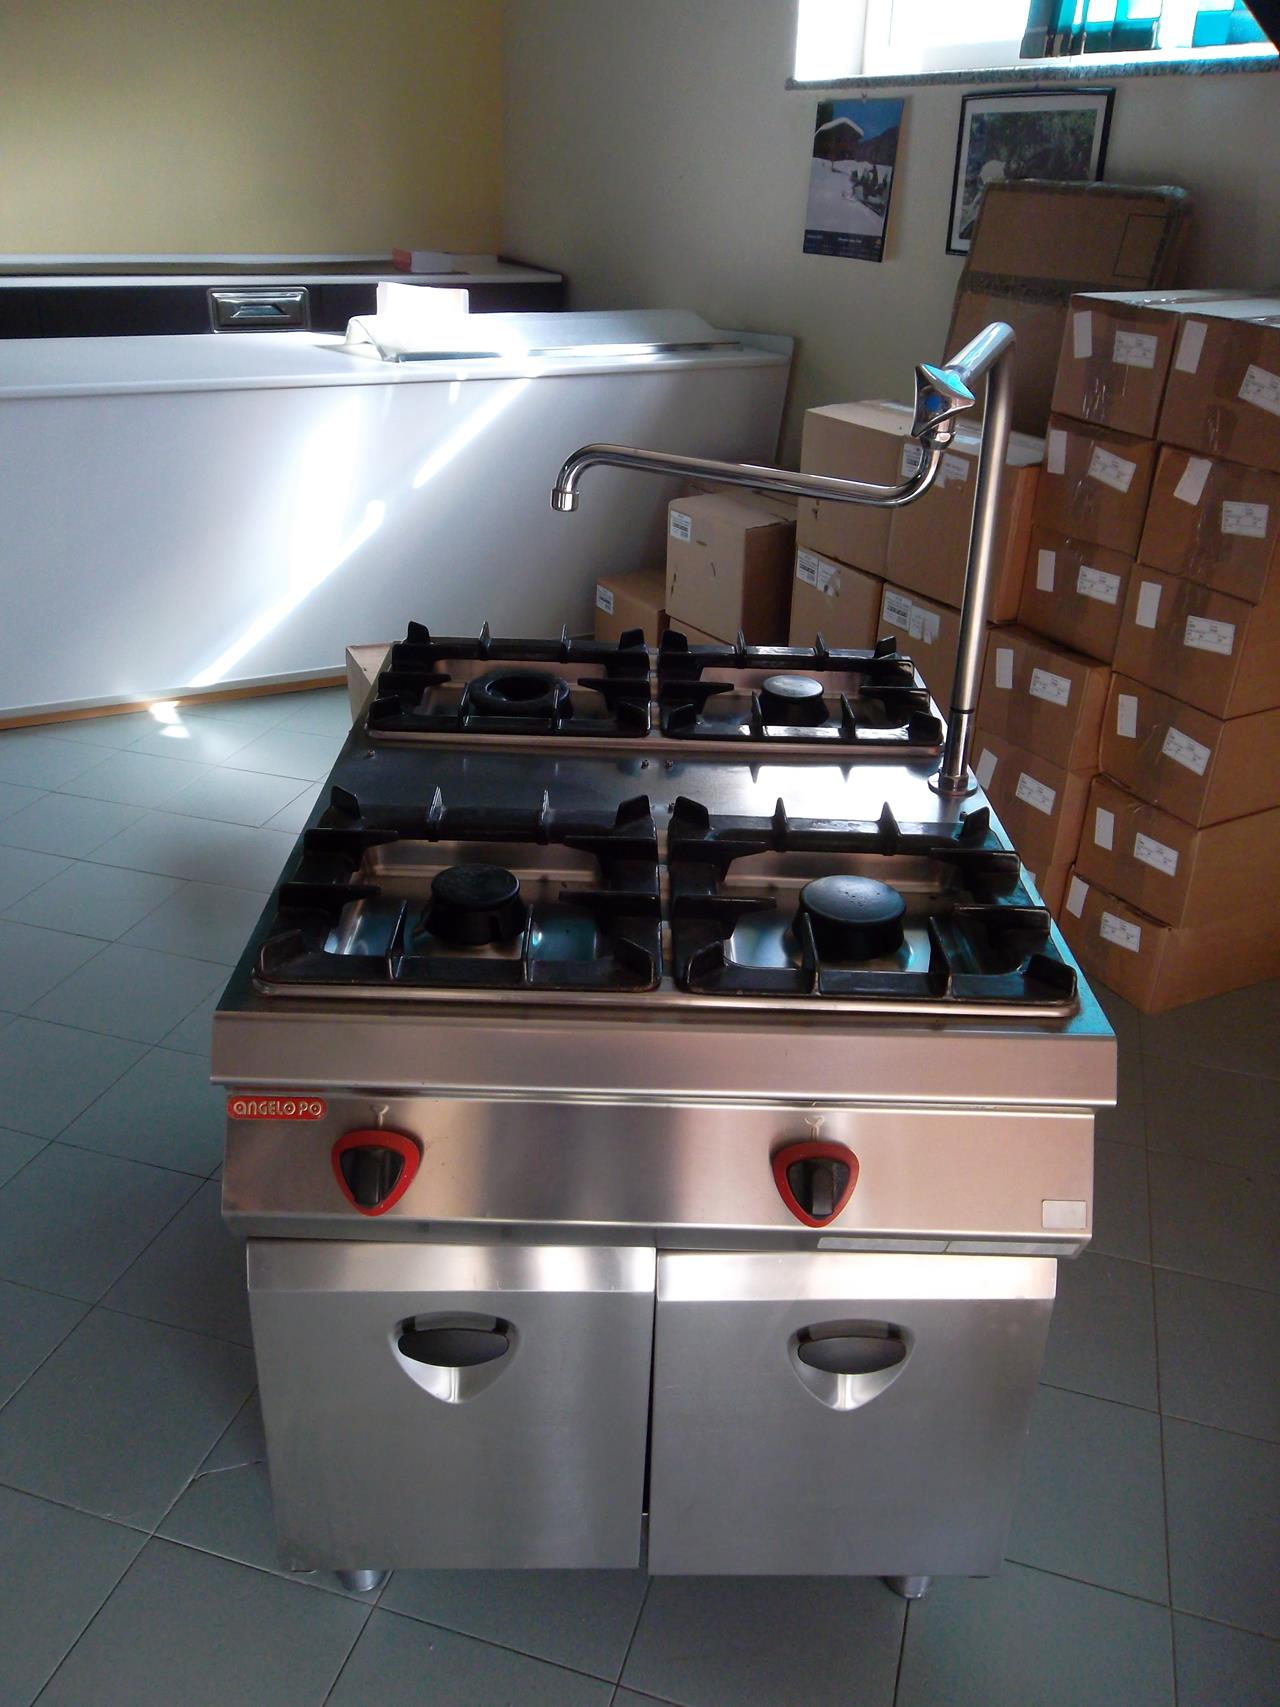 Awesome Usato Cucine Professionali Contemporary - Ideas & Design ...